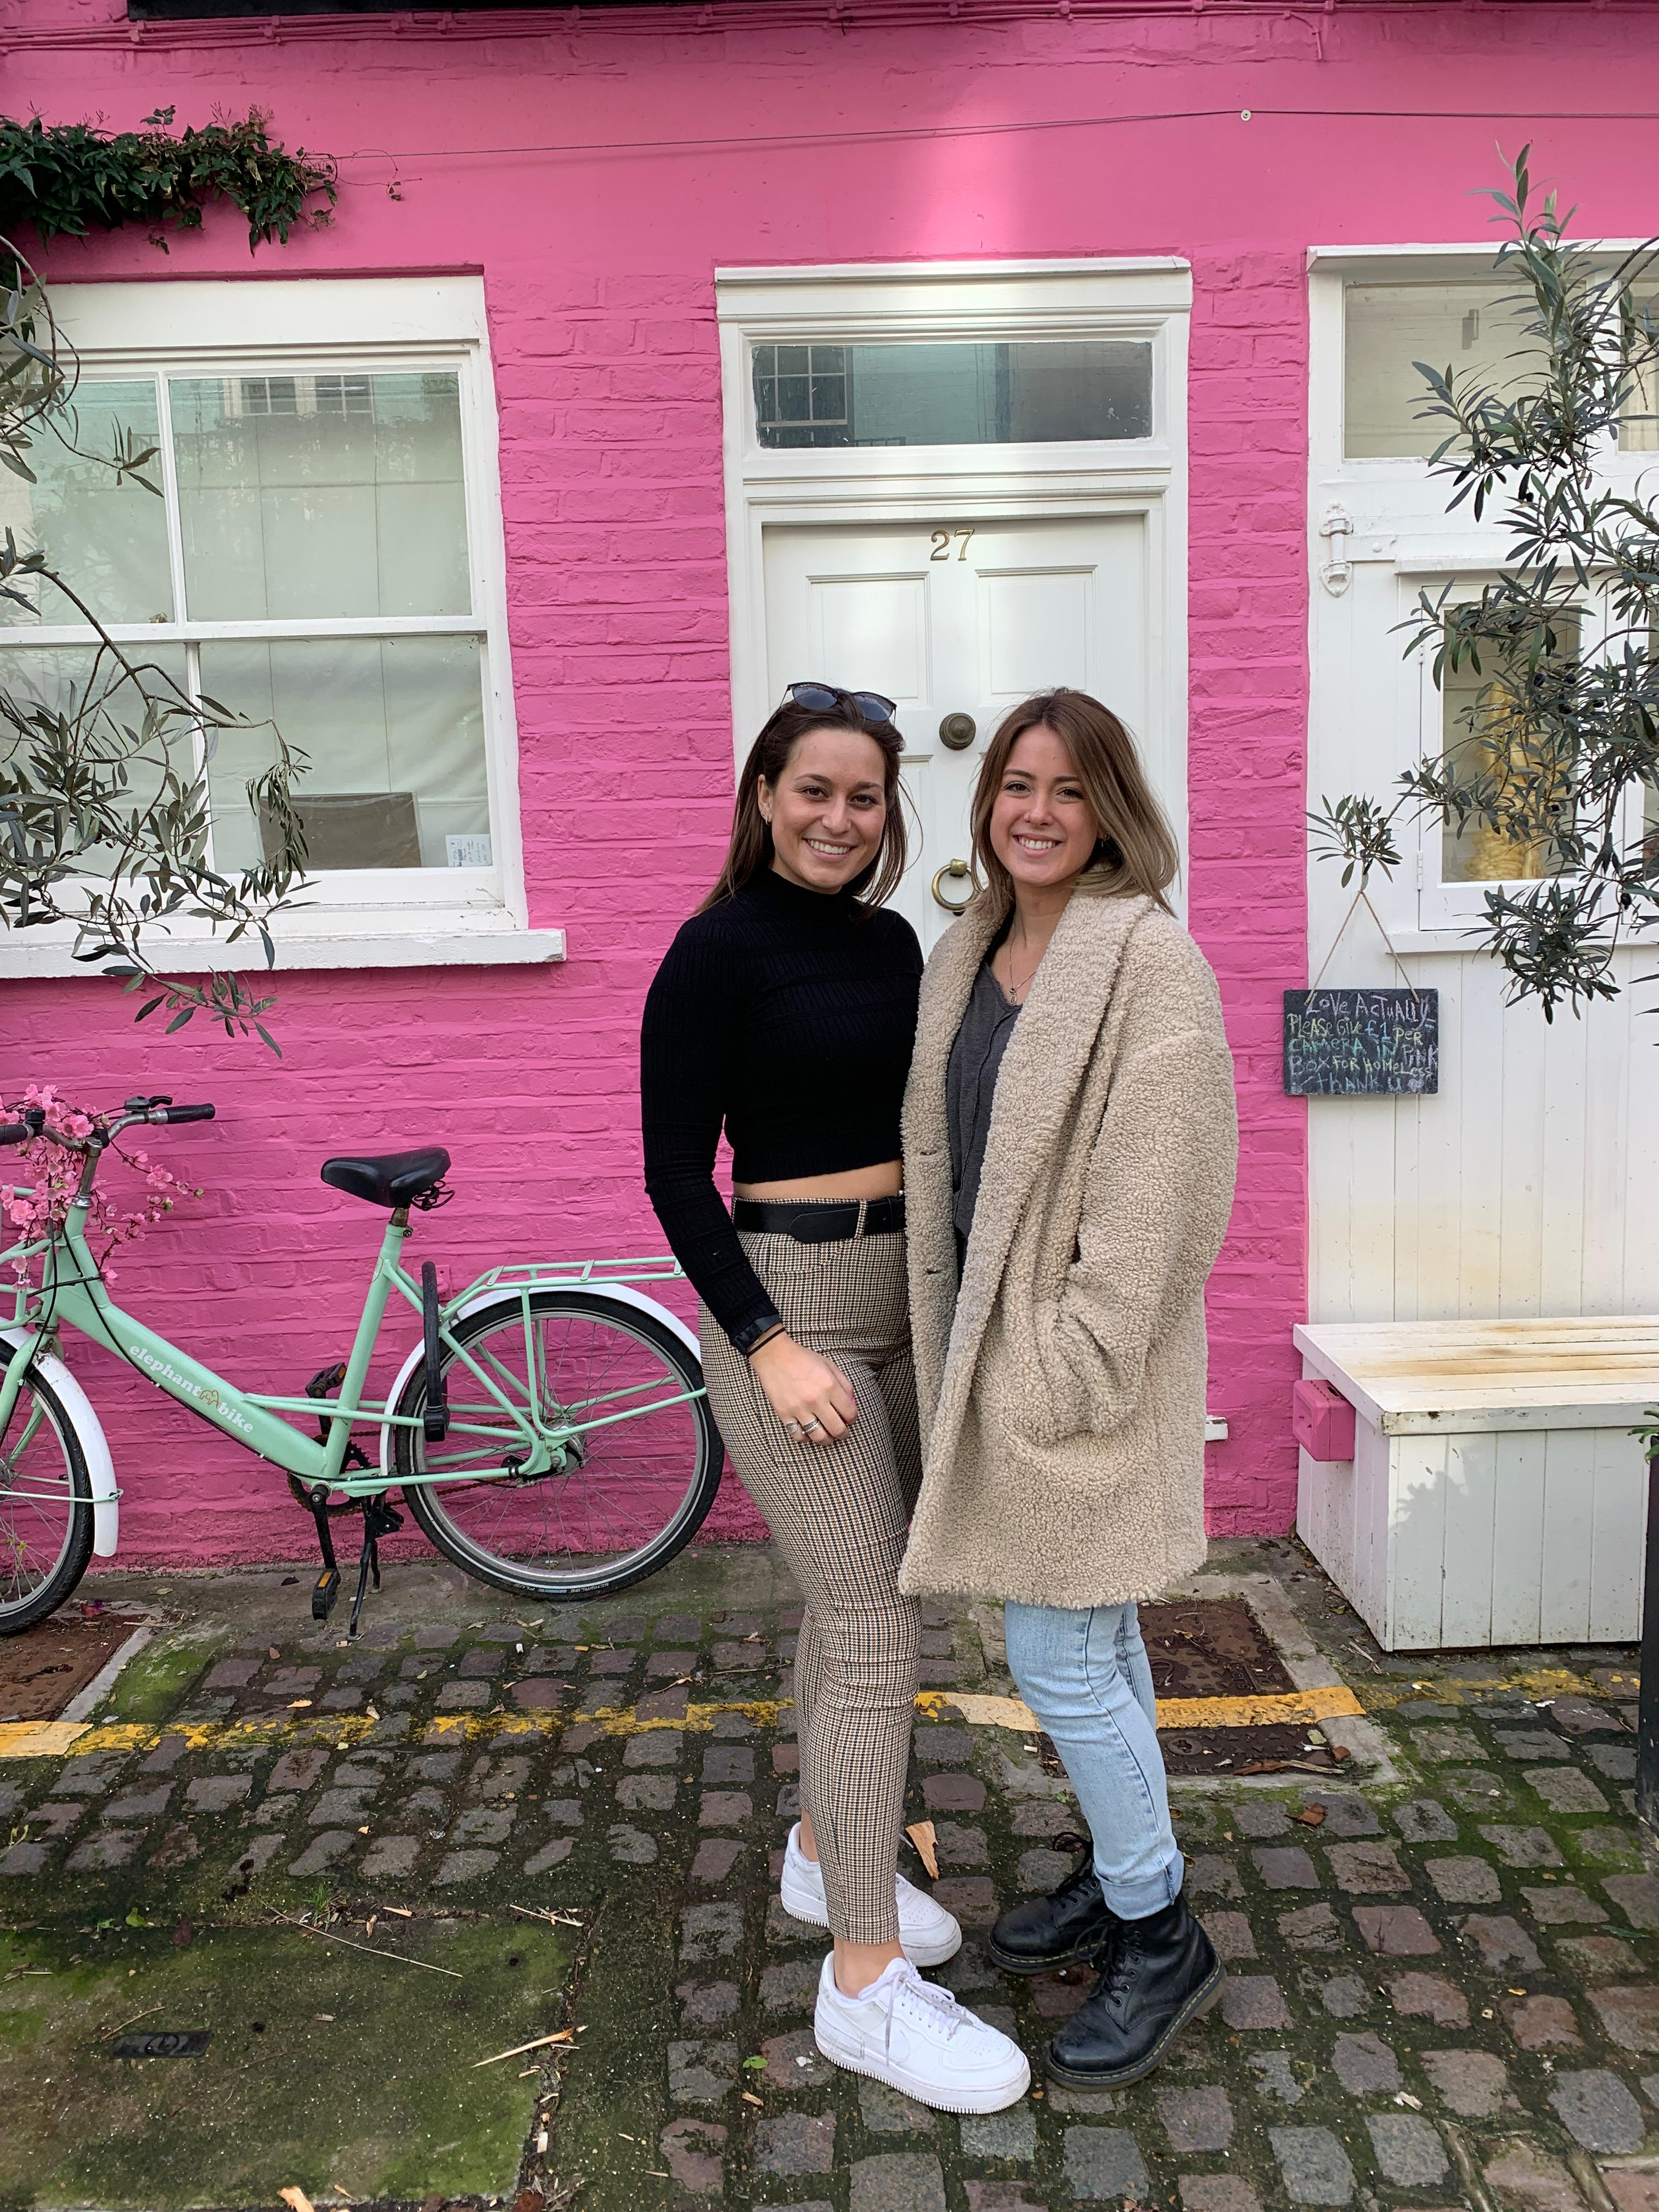 Photo with a friend in front of a pink wall in London